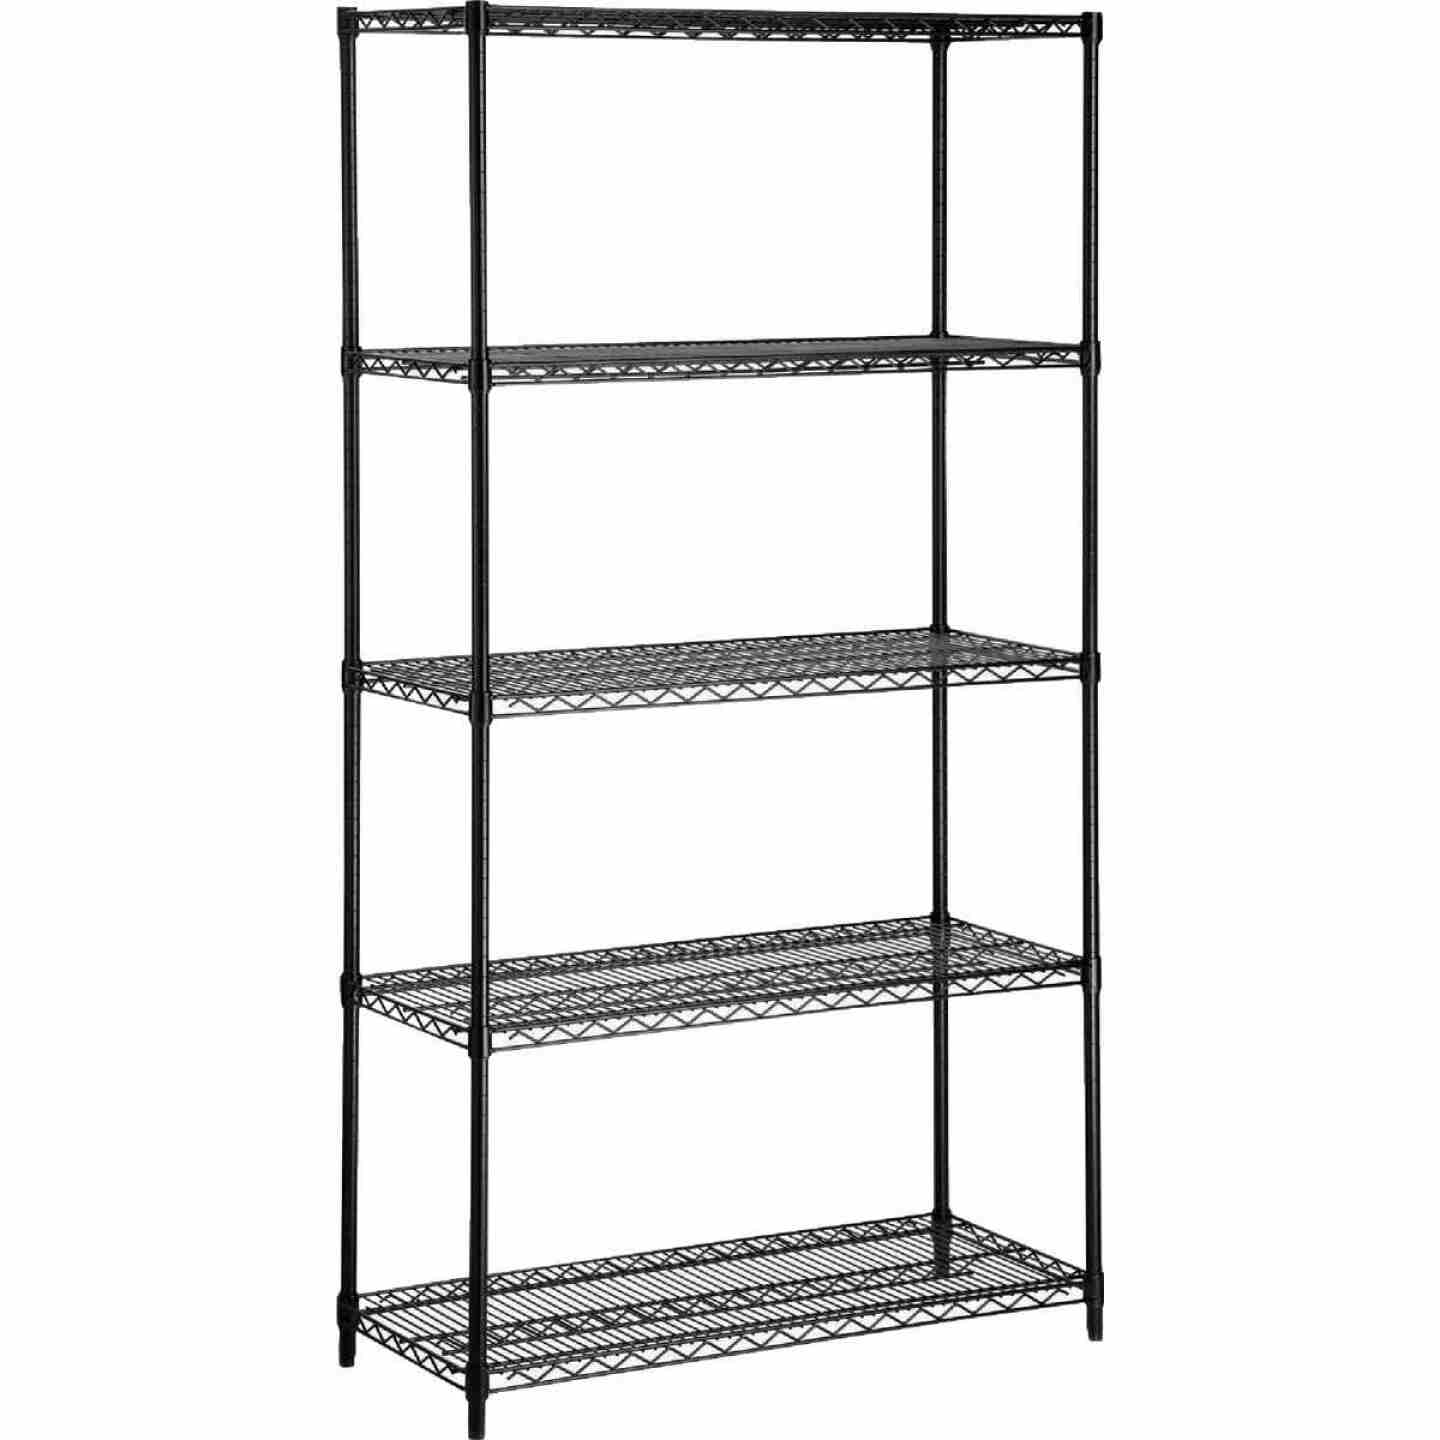 Honey Can Do 35 In. x 72 In. x 13 In. 5-Tier Black Stainless Steel Shelf Image 1